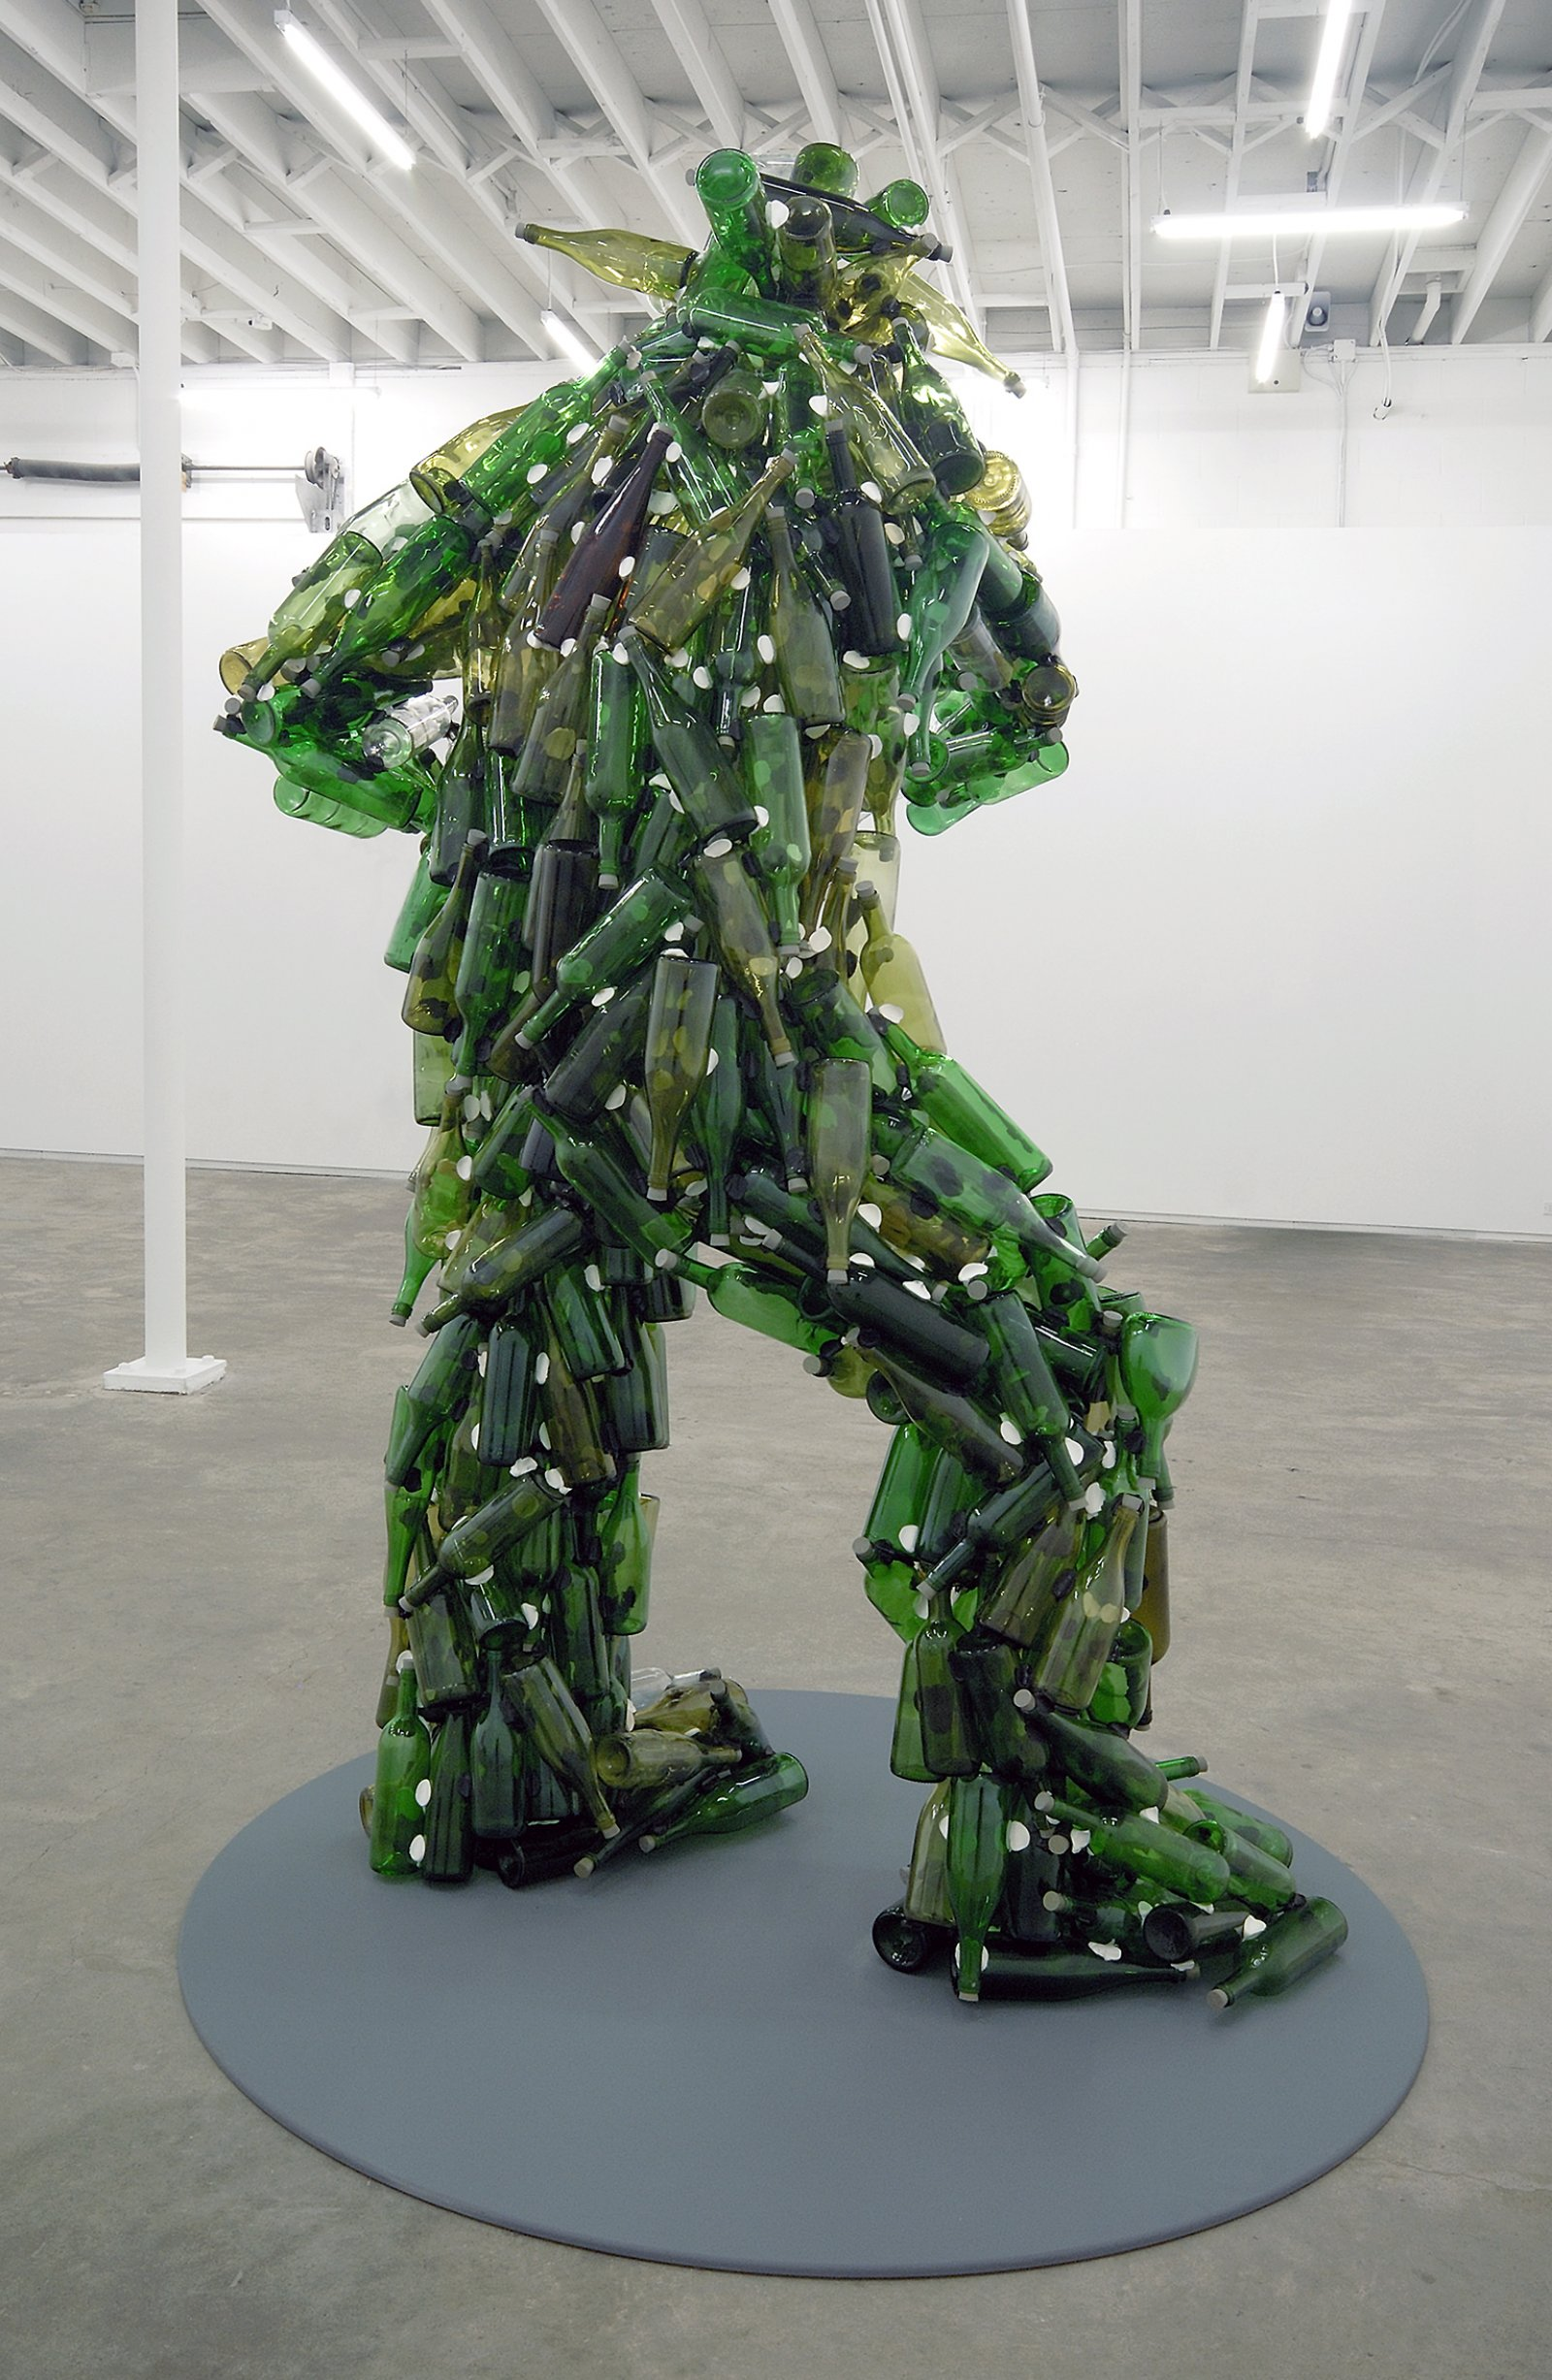 Jerry Pethick, Le Semeur/Sunlight and Flies, 1984–2002, glass bottles, silicone, rubber corks, aluminum, surveillance mirror, 95 x 48 x 43 in. (240 x 122 x 110 cm)   by Jerry Pethick